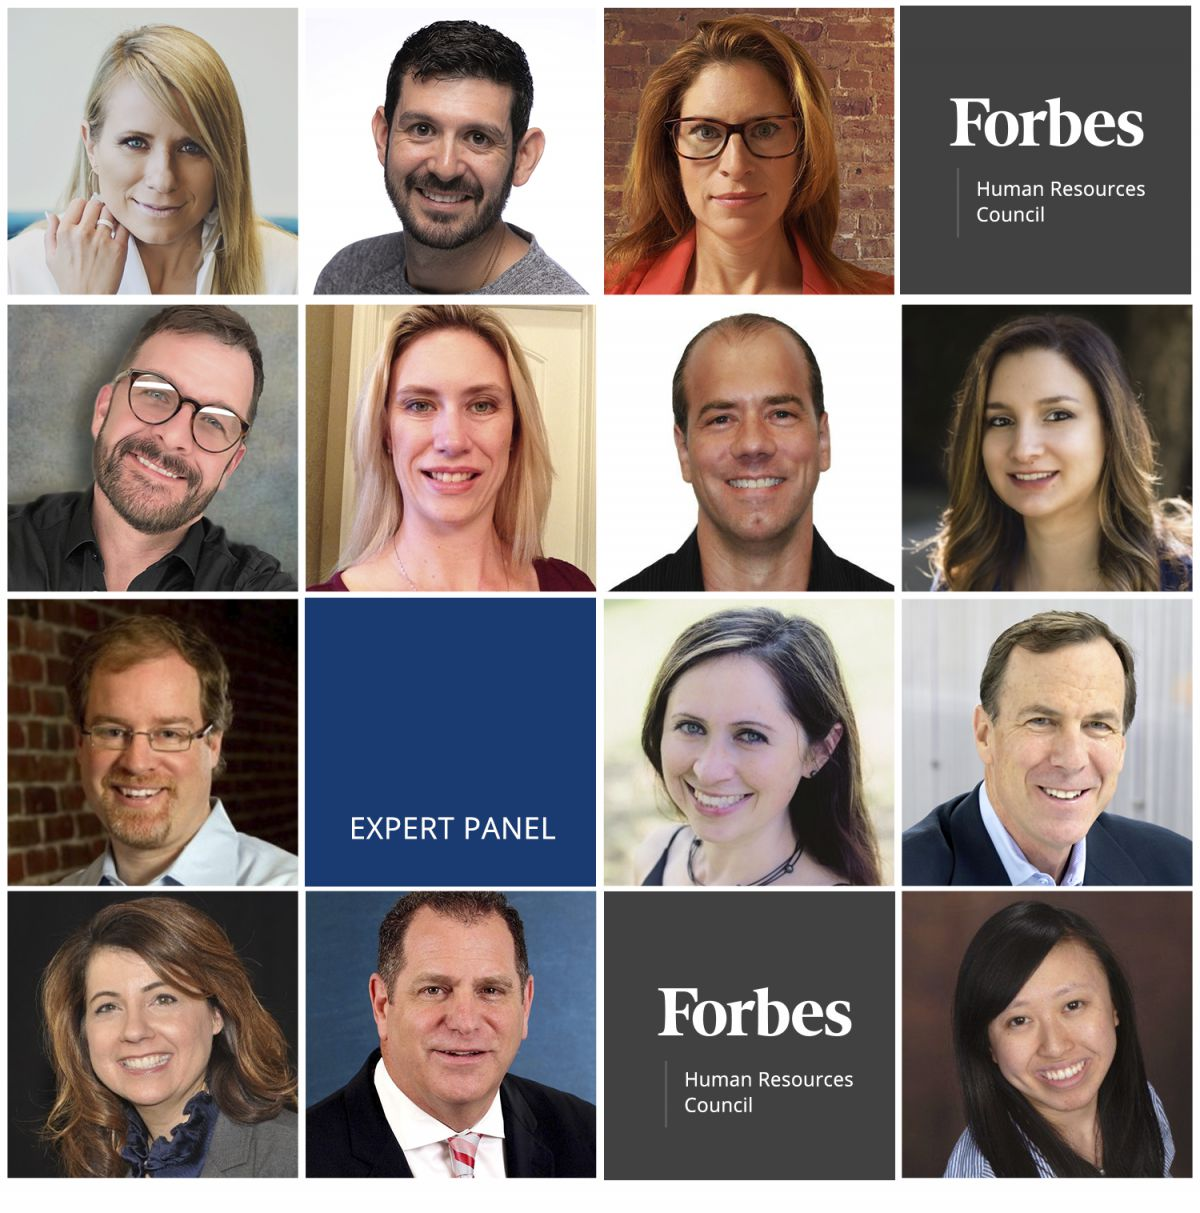 https%3A%2F%2Fblogs images.forbes.com%2Fforbeshumanresourcescouncil%2Ffiles%2F2019%2F09%2F13 Ways HR Departments Can Help Foster A Positive Company Culture 1200x1213.png